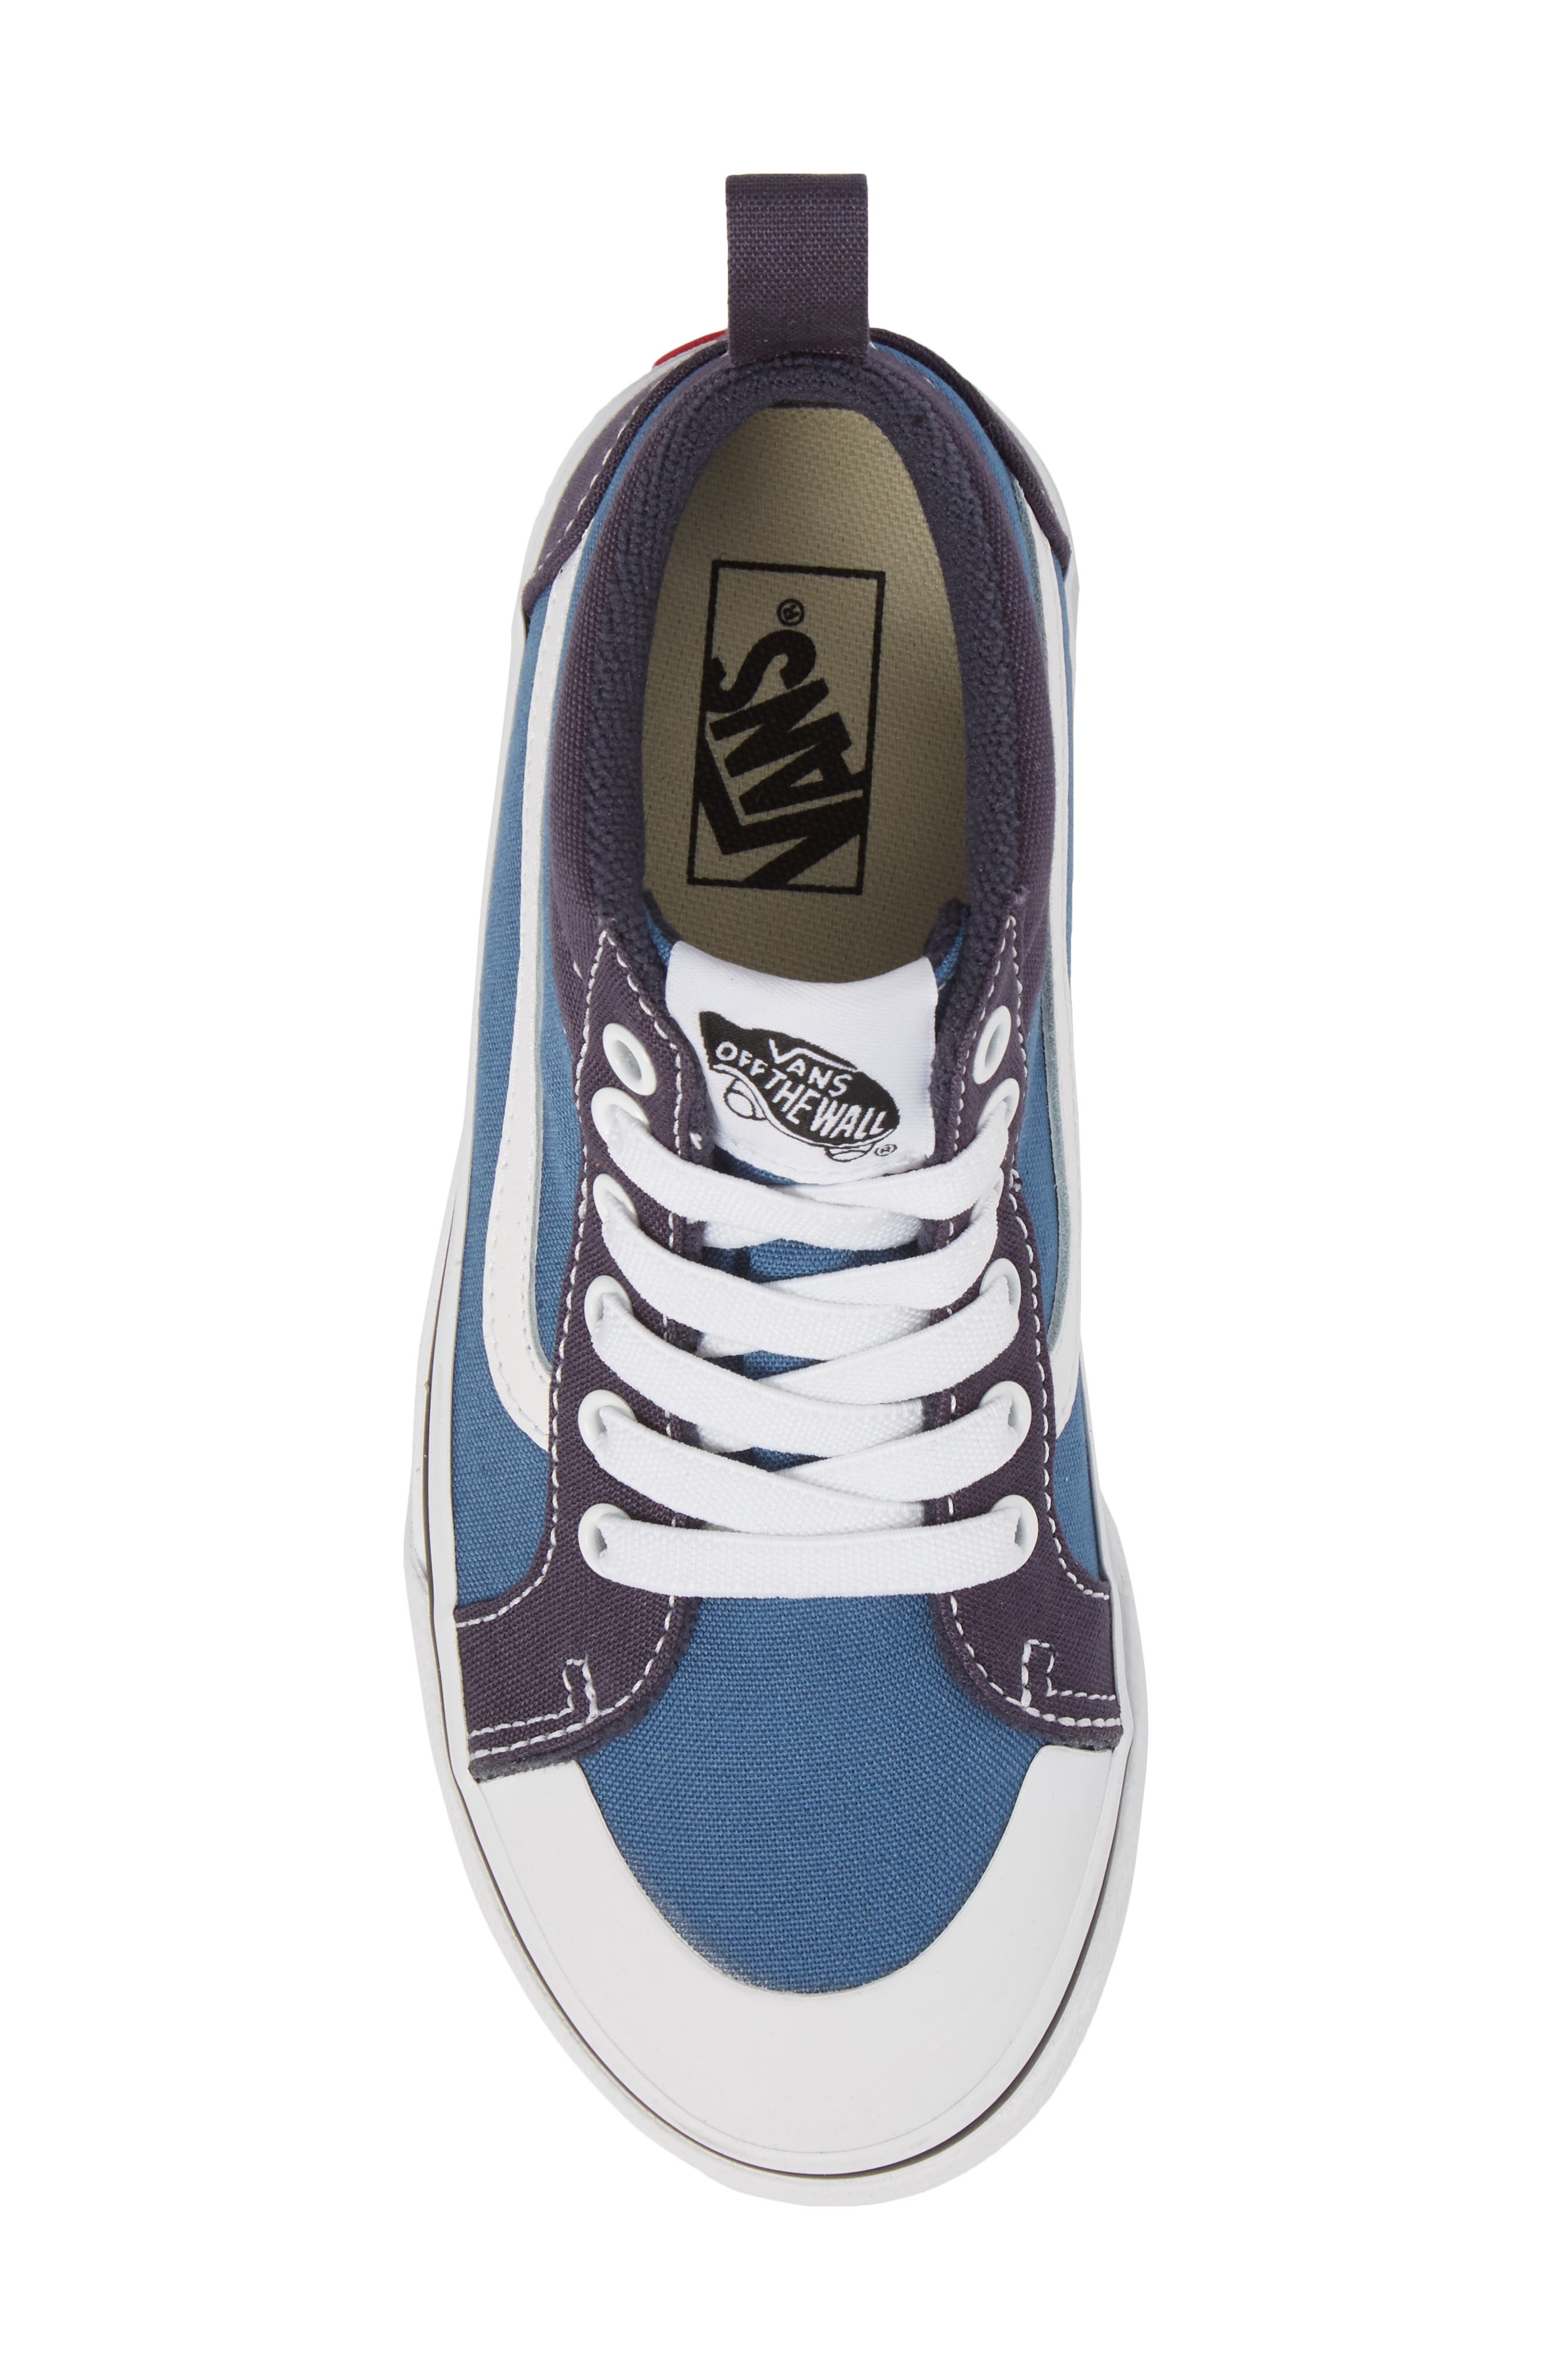 Racer Mid Elastic Lace Sneaker,                             Alternate thumbnail 5, color,                             Navy/ Navy